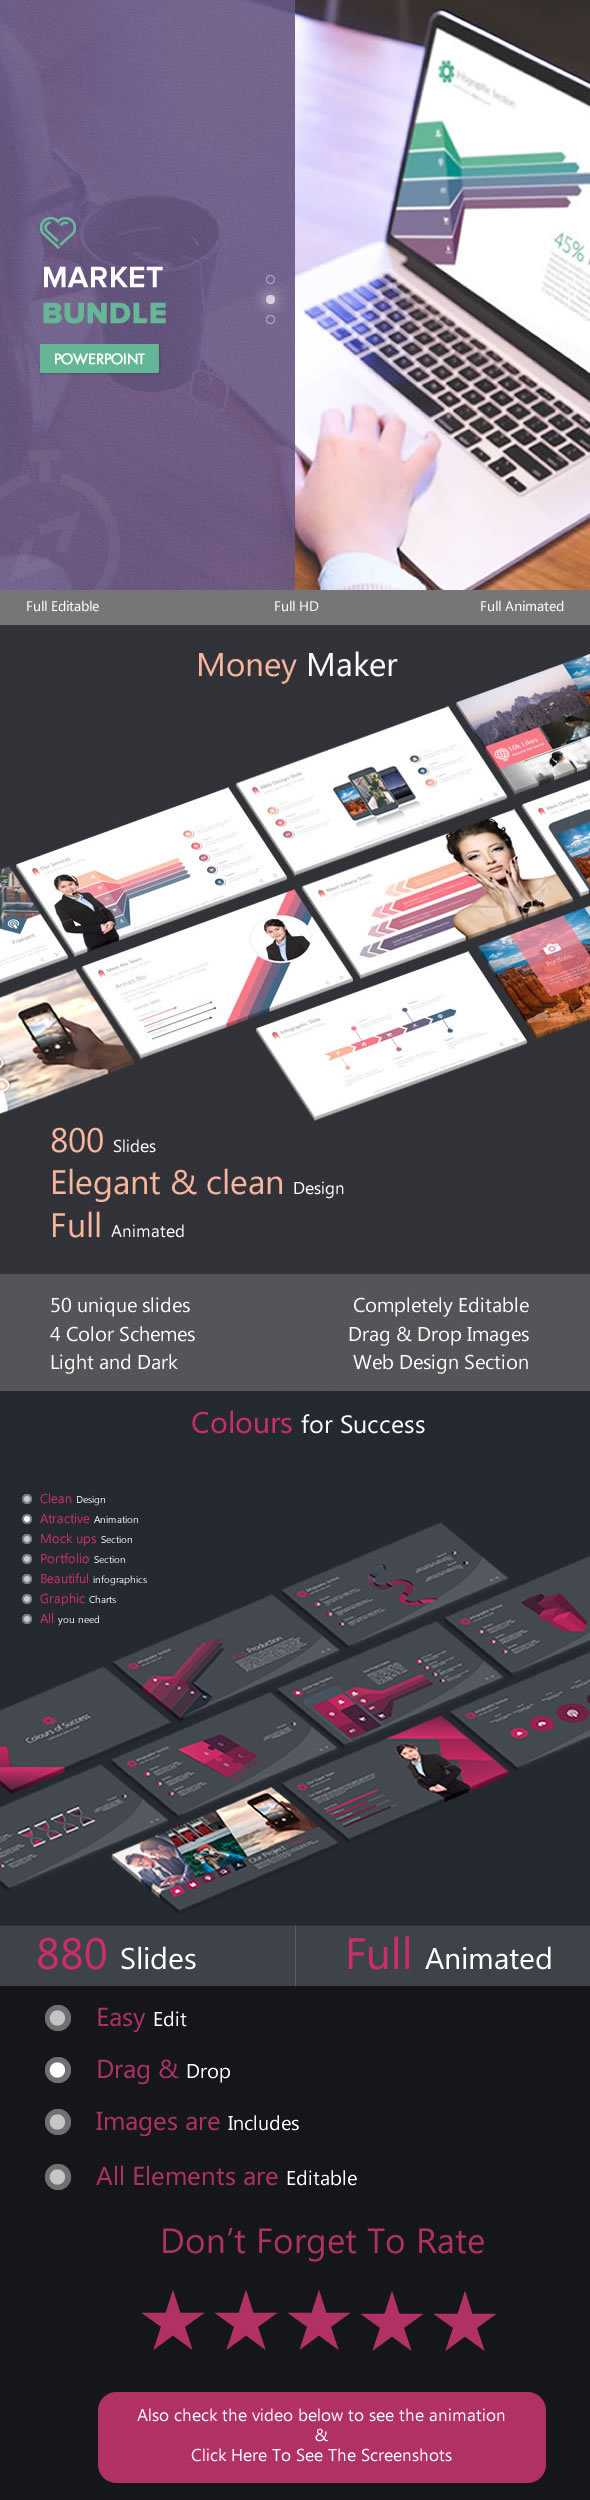 Market Bundle (PowerPoint Templates)